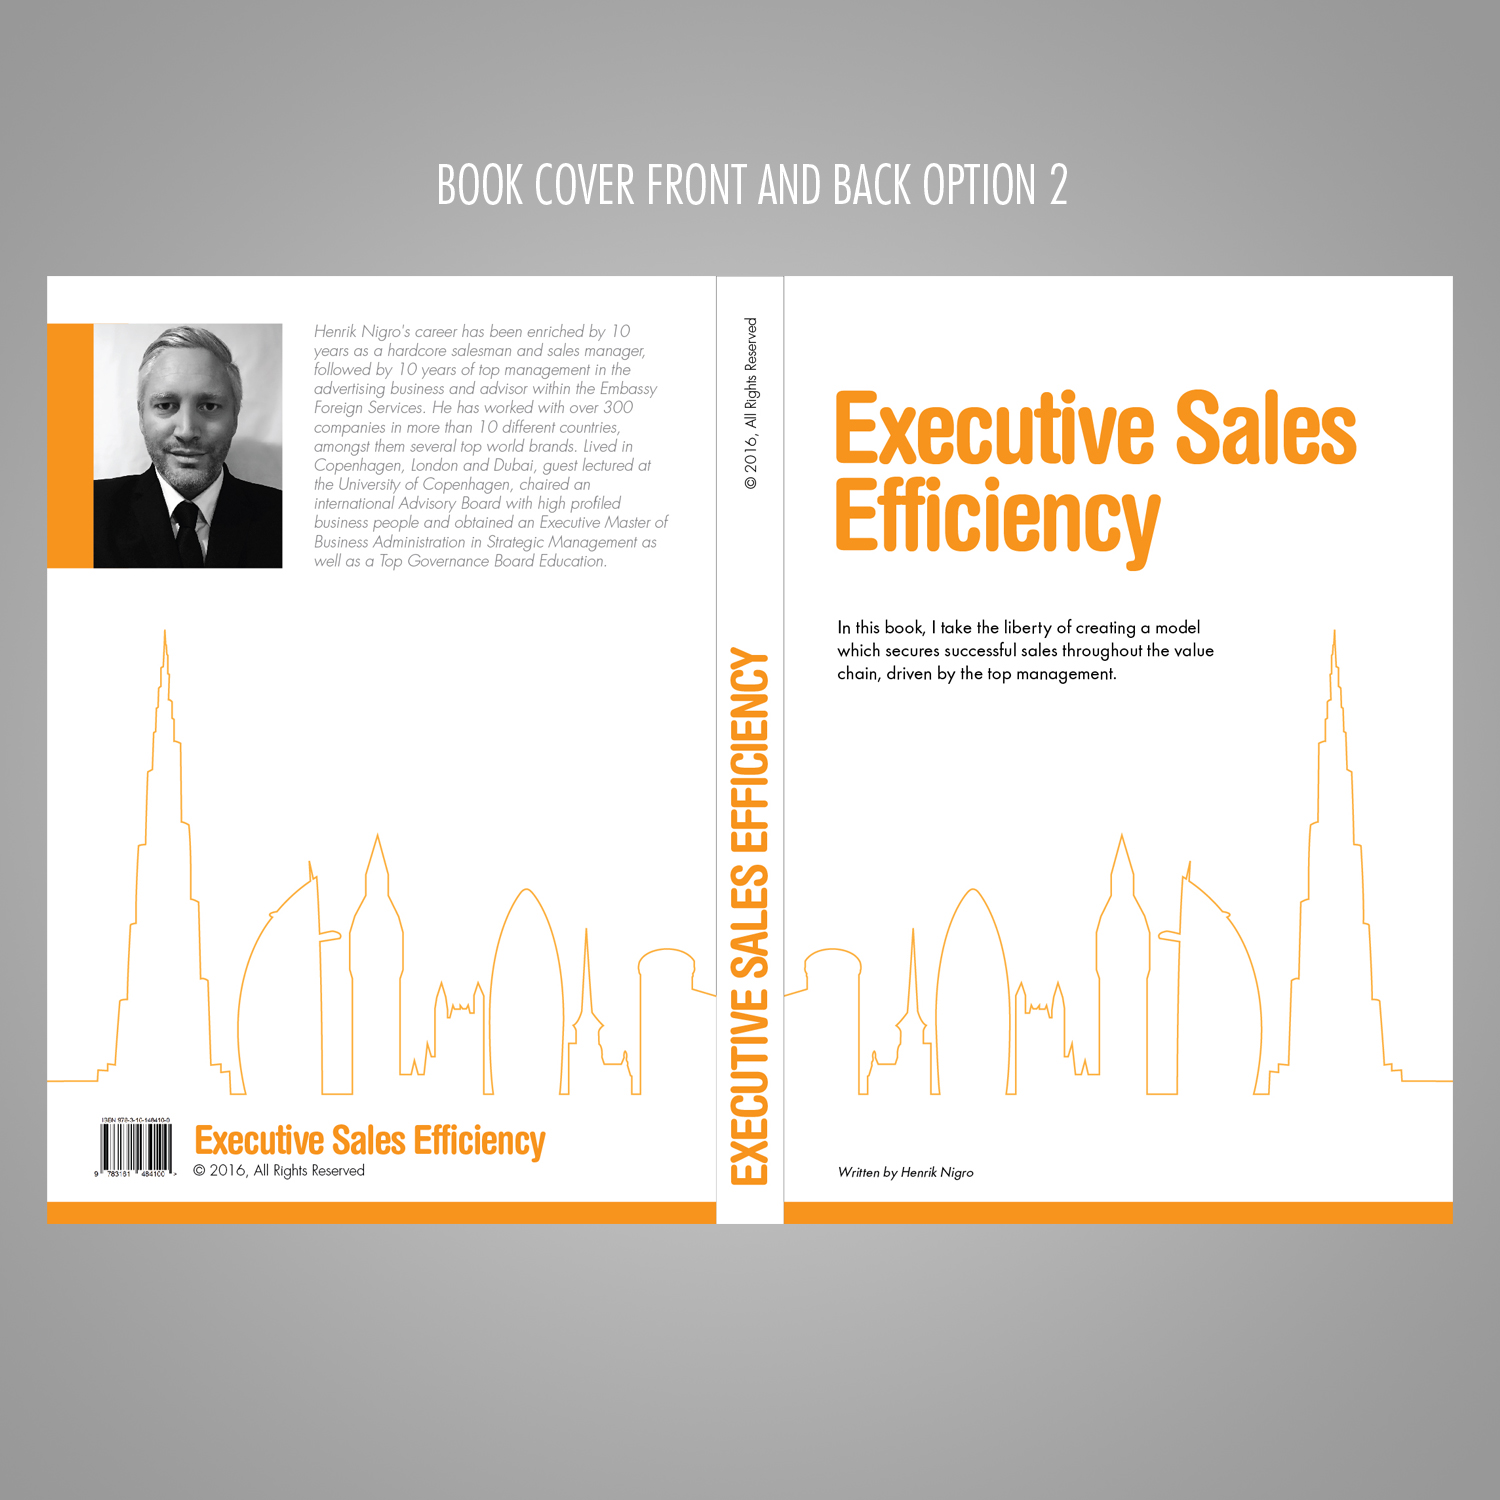 Book Cover Design Jobs : Modern upmarket management consulting book cover design